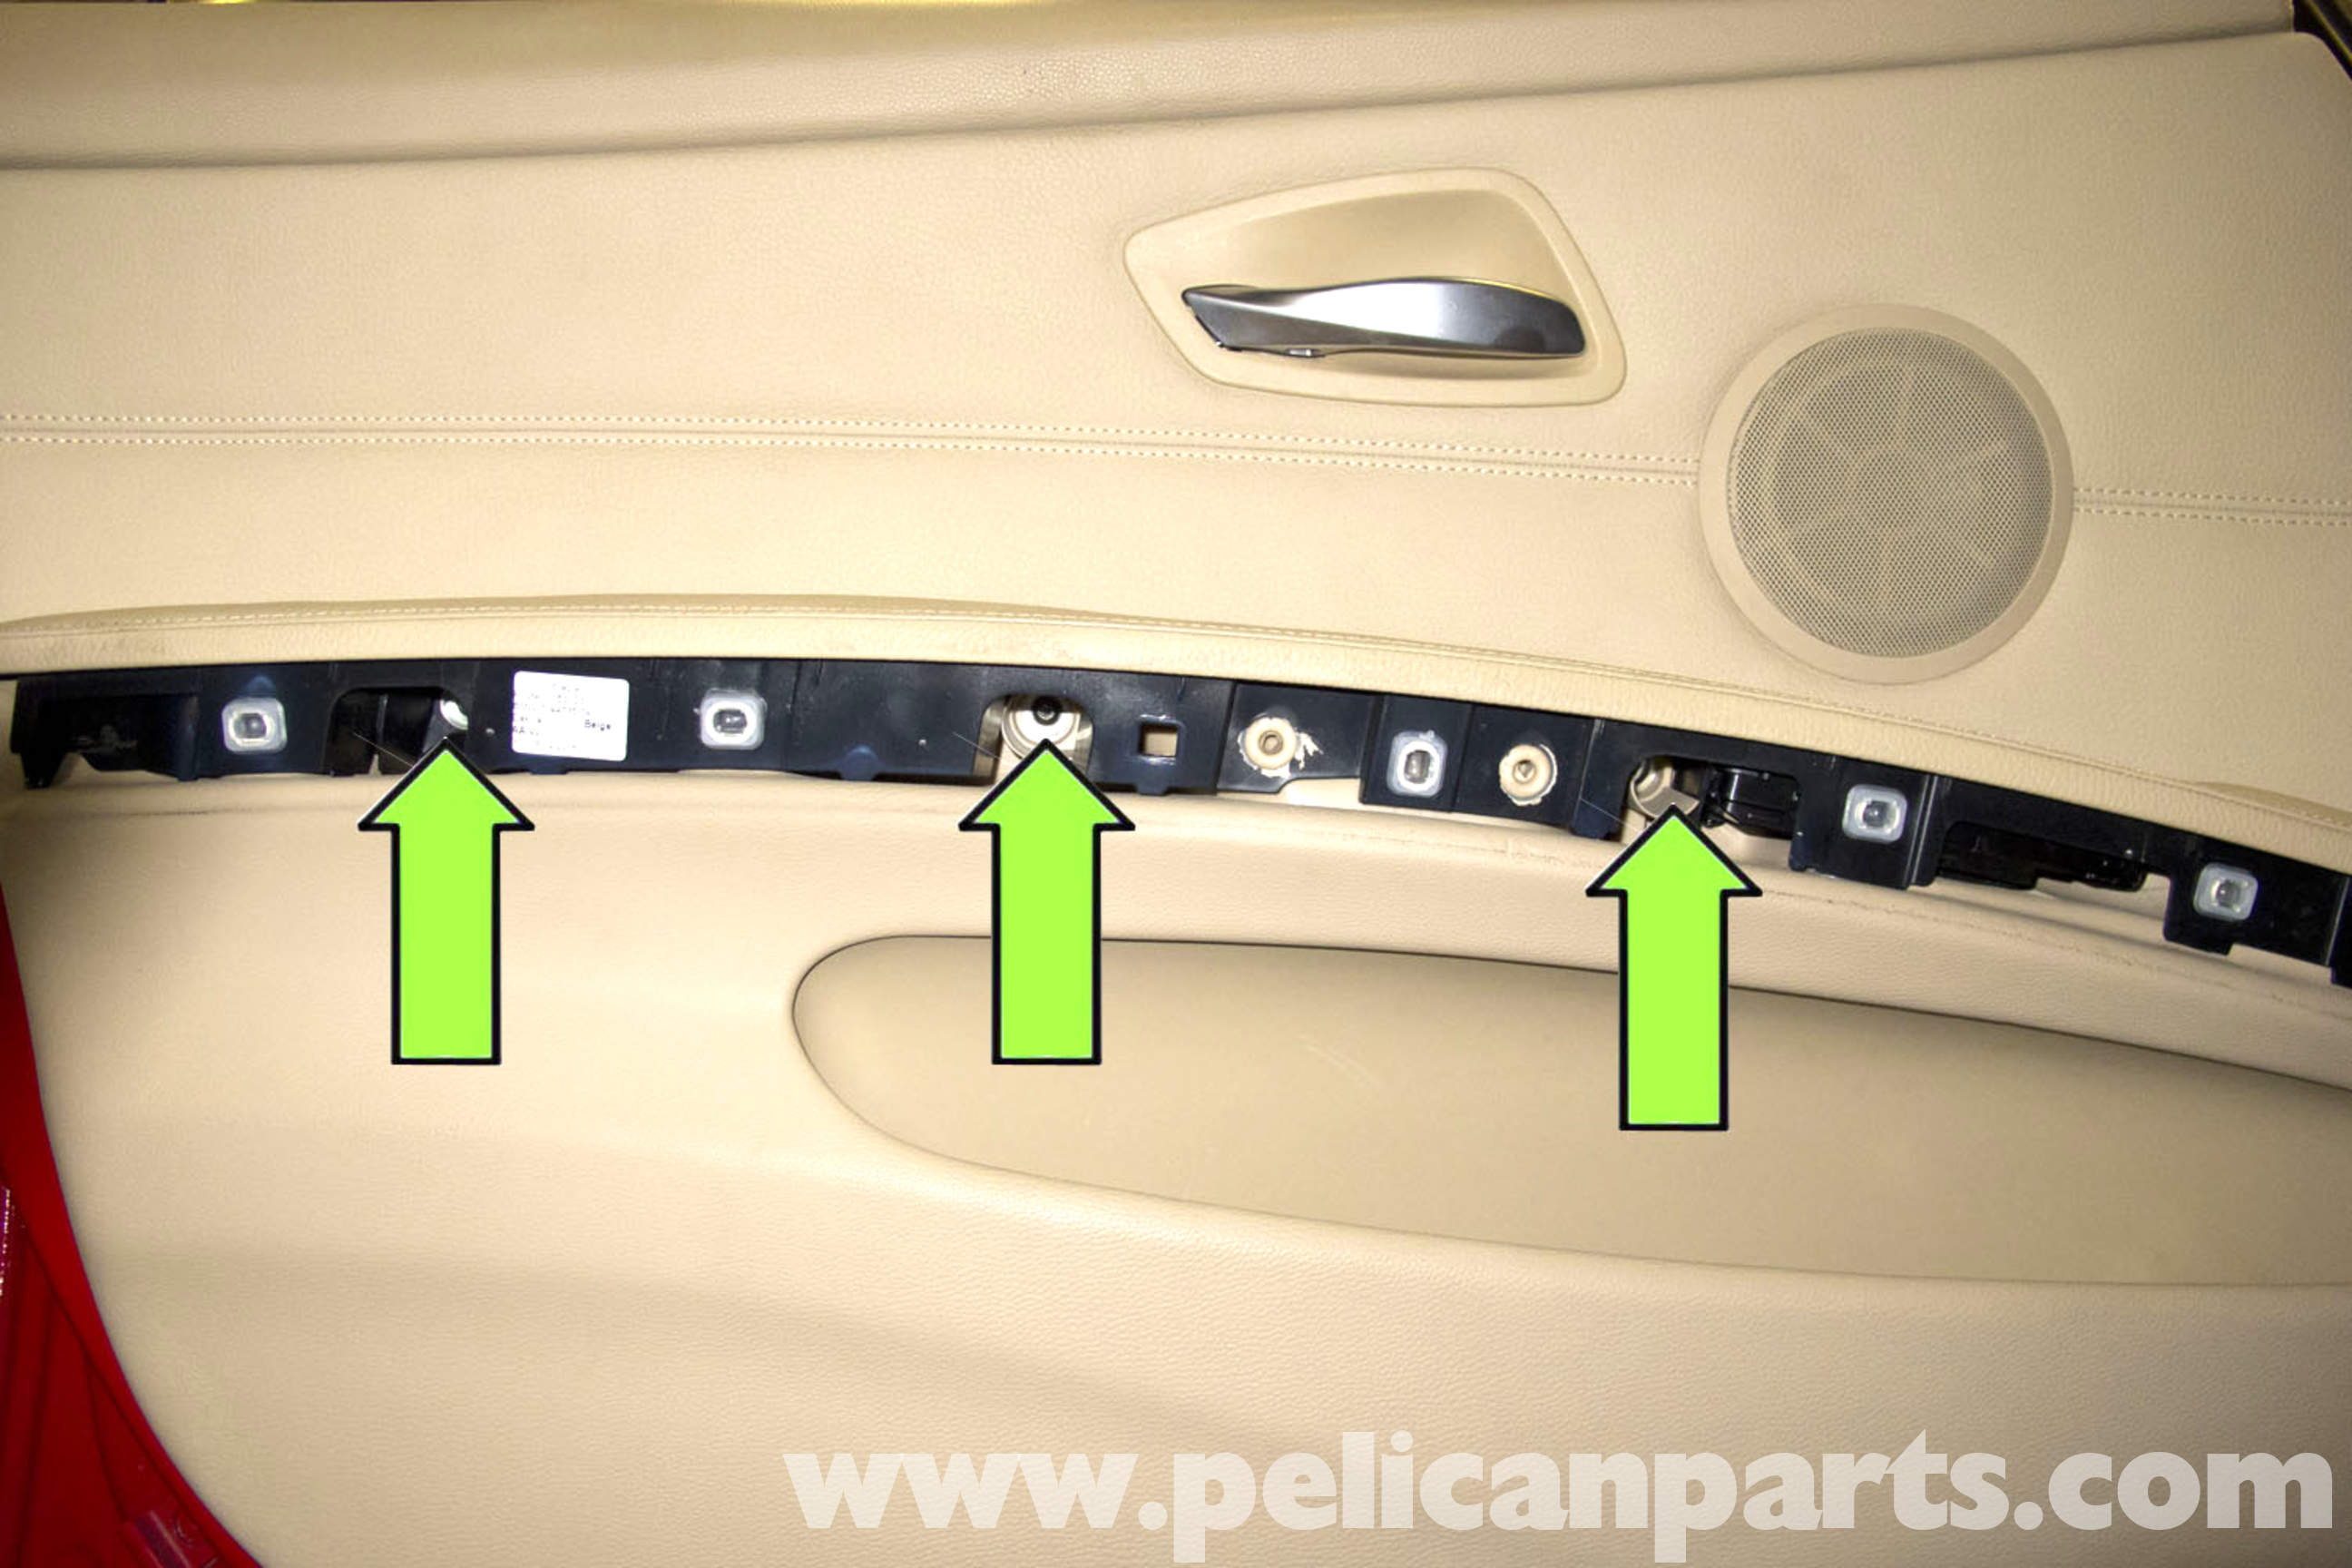 Bmw e90 door panel removal e91 e92 e93 pelican parts diy large image extra large image eventelaan Gallery